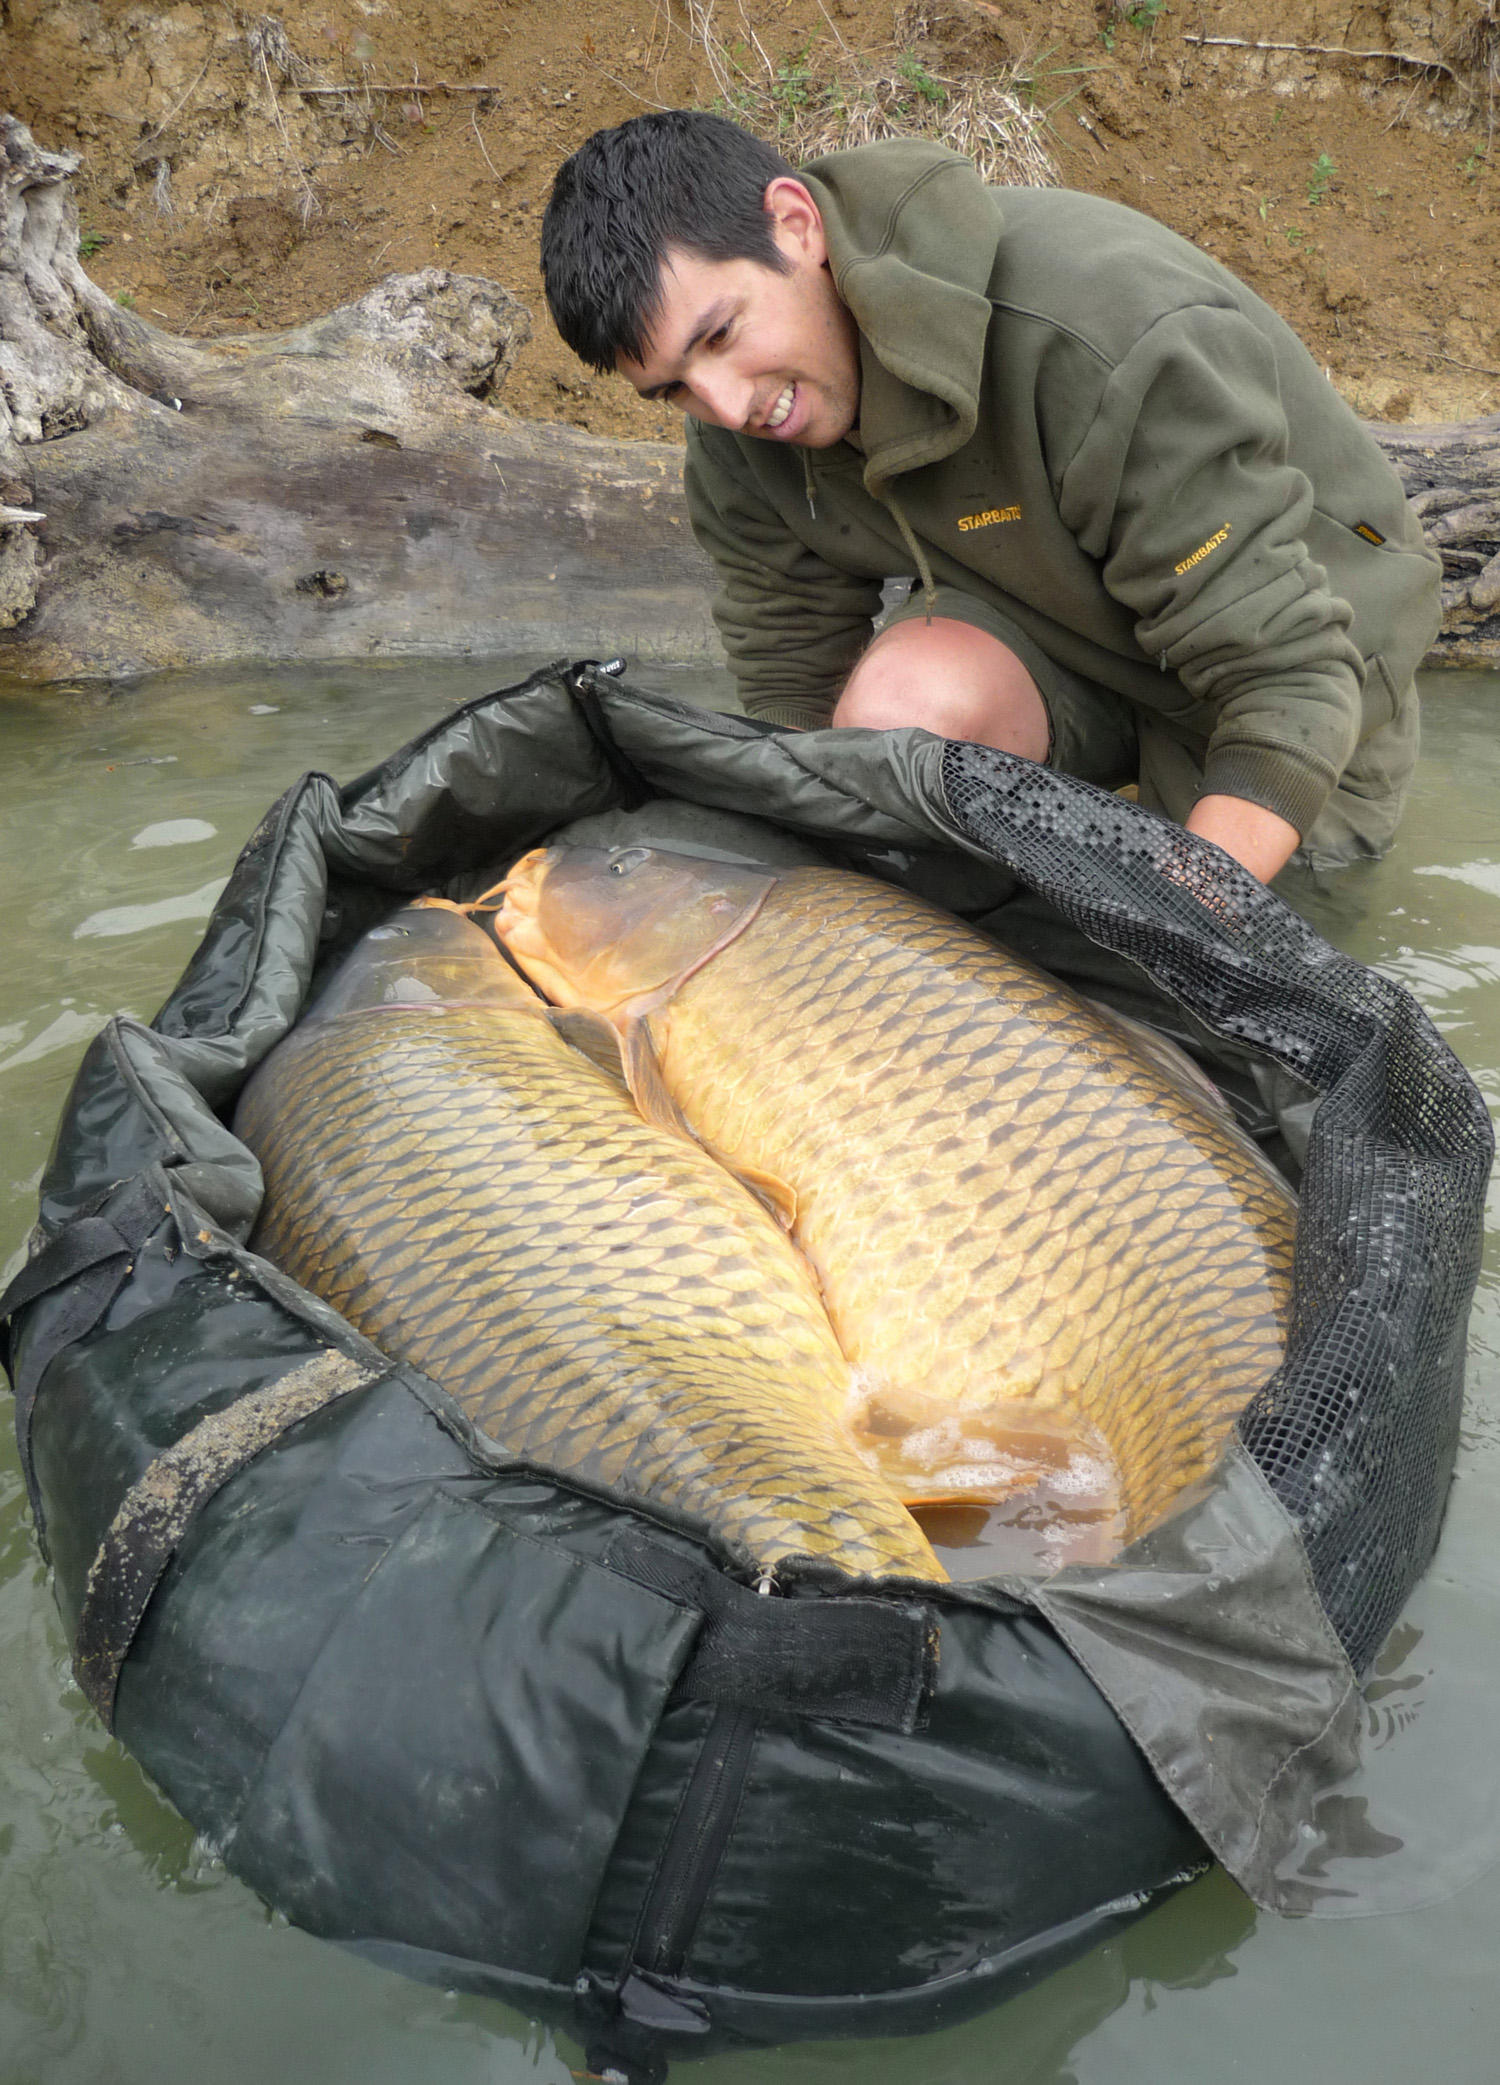 http://starbaits.com/fichiers/images/team/gallery/DUCERE_Cedric/5-DUCERE-CEDRIC.jpg